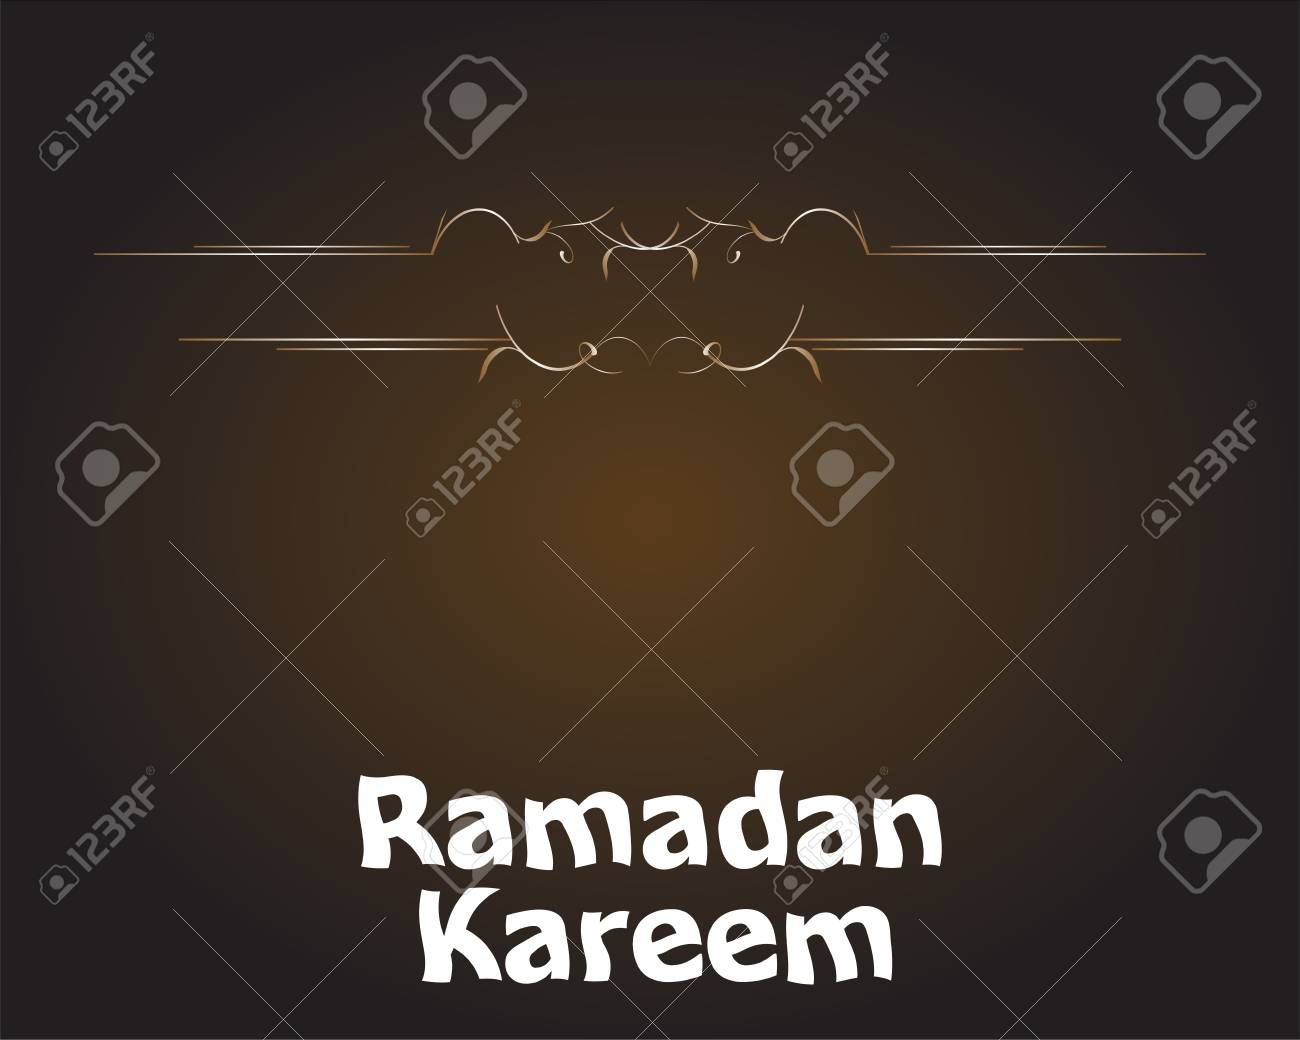 Islamic Greeting Arabic Text For Holy Month Ramadan Kareem Stock